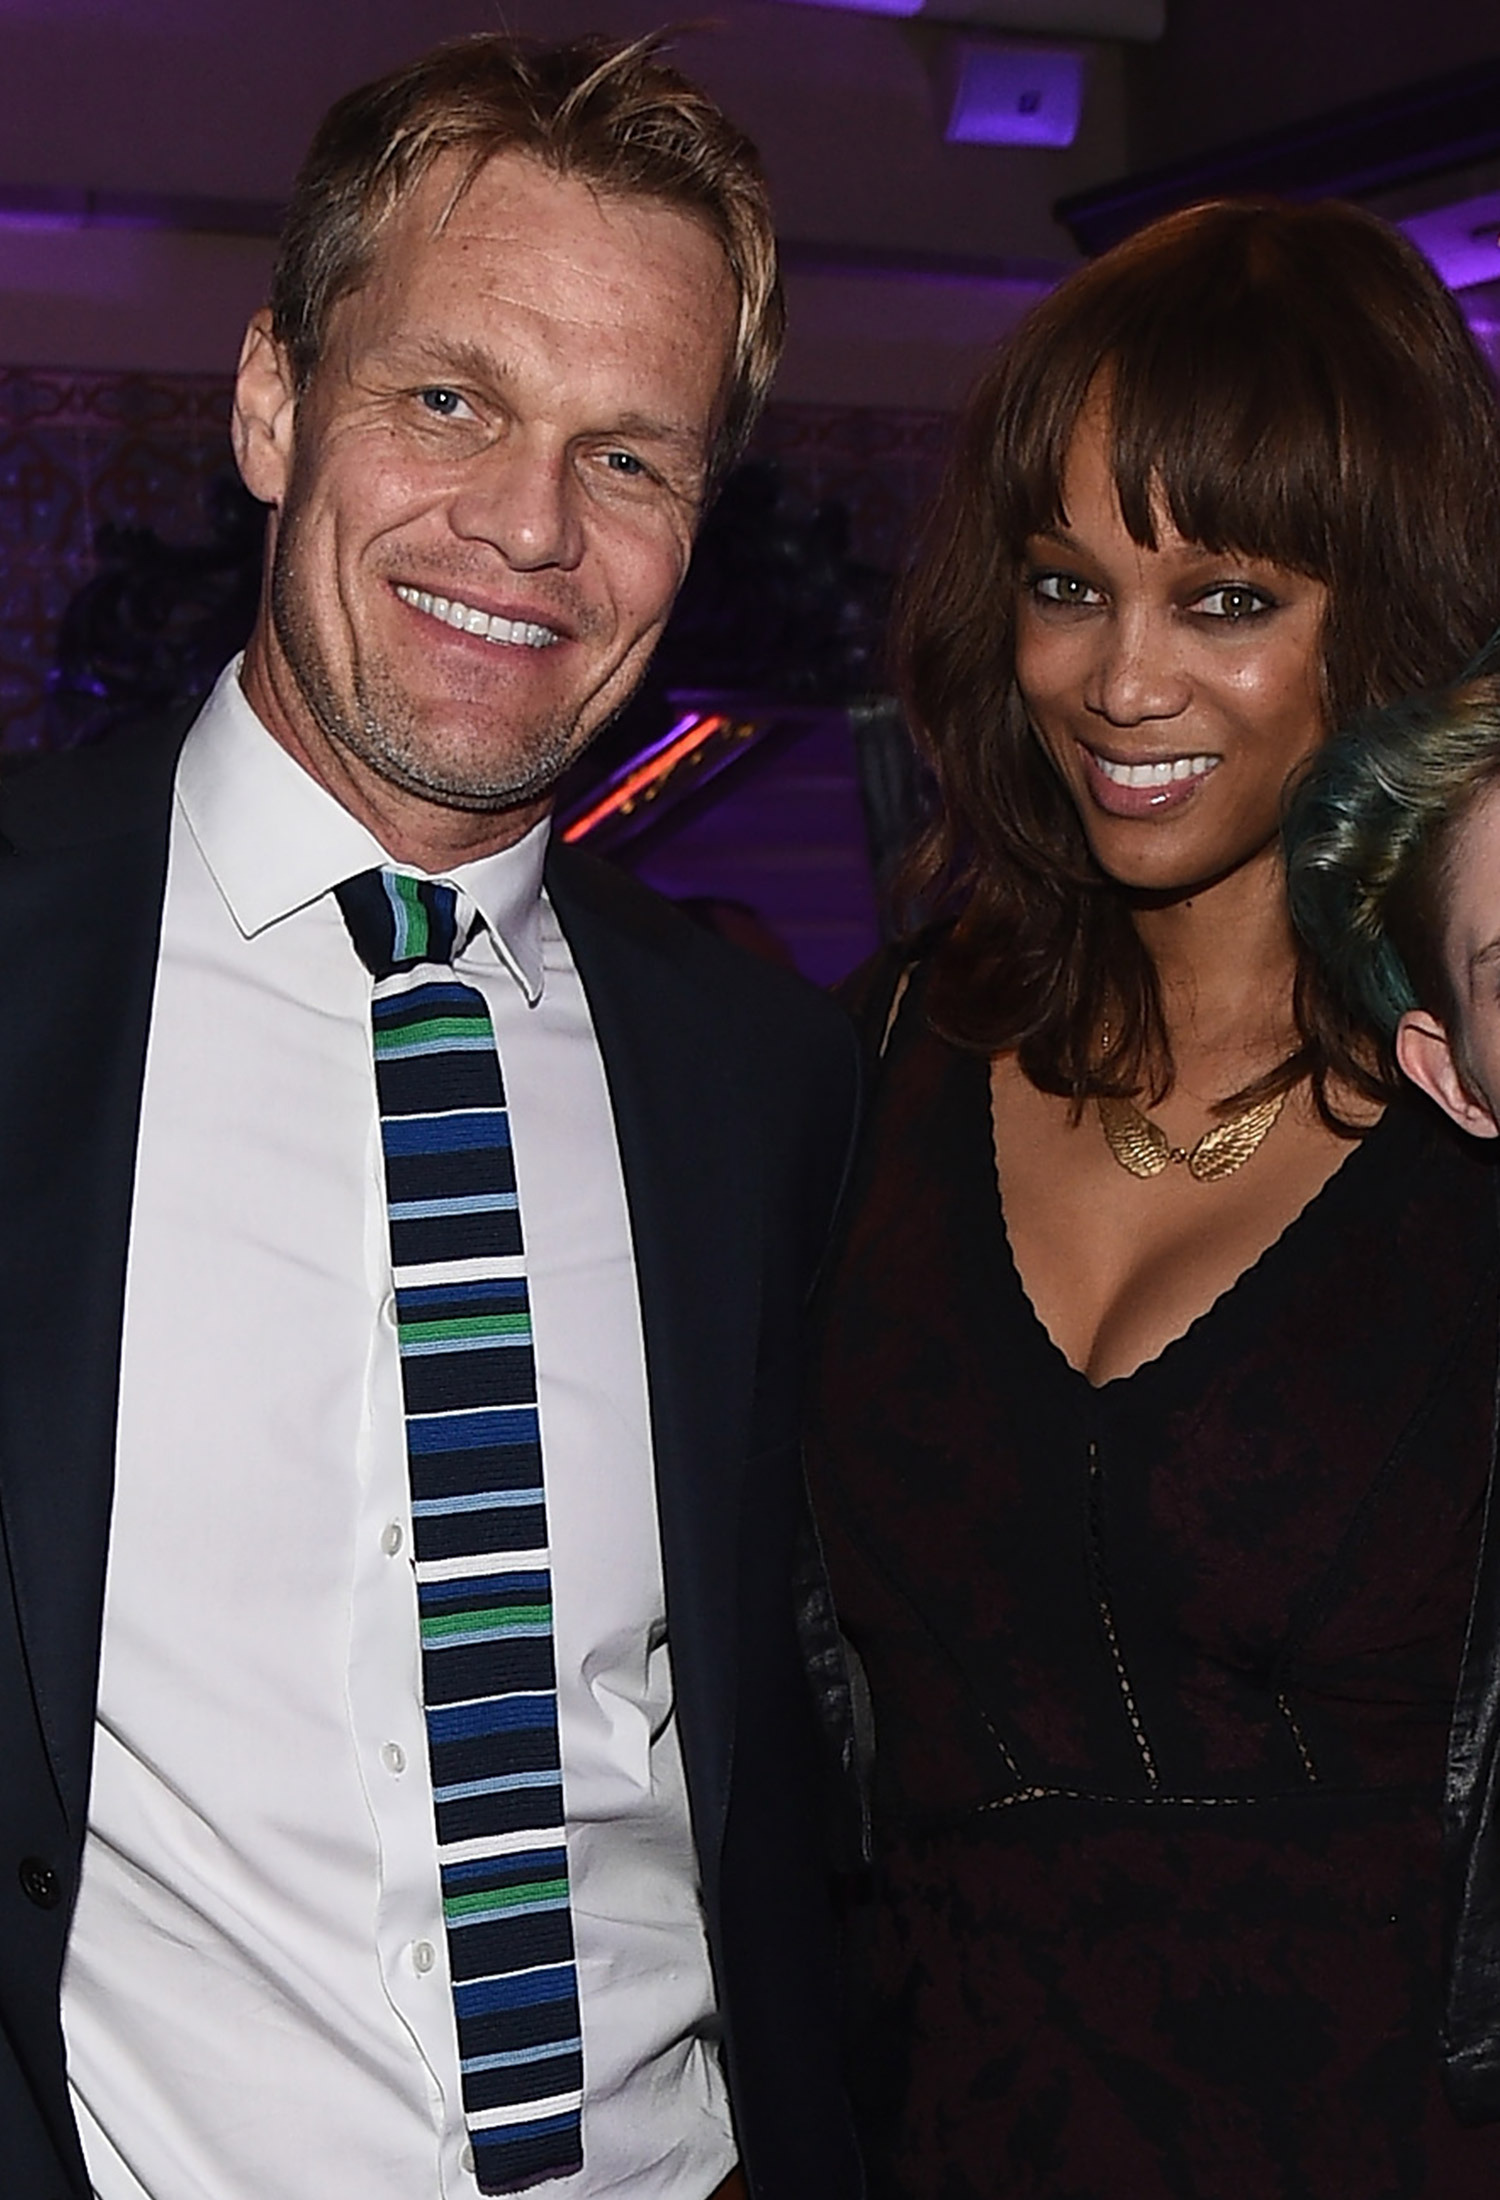 BEVERLY HILLS, CA - NOVEMBER 19:  (L-R) Designer August Getty, photographer Erik Asla, model Tyra Banks and model Natalia Getty attend the August Getty Atelier Dinner at the Montage Hotel Rooftop Grill on November 19, 2014 in Beverly Hills, California.  (Photo by Michael Buckner/Getty Images for August Getty Atelier)